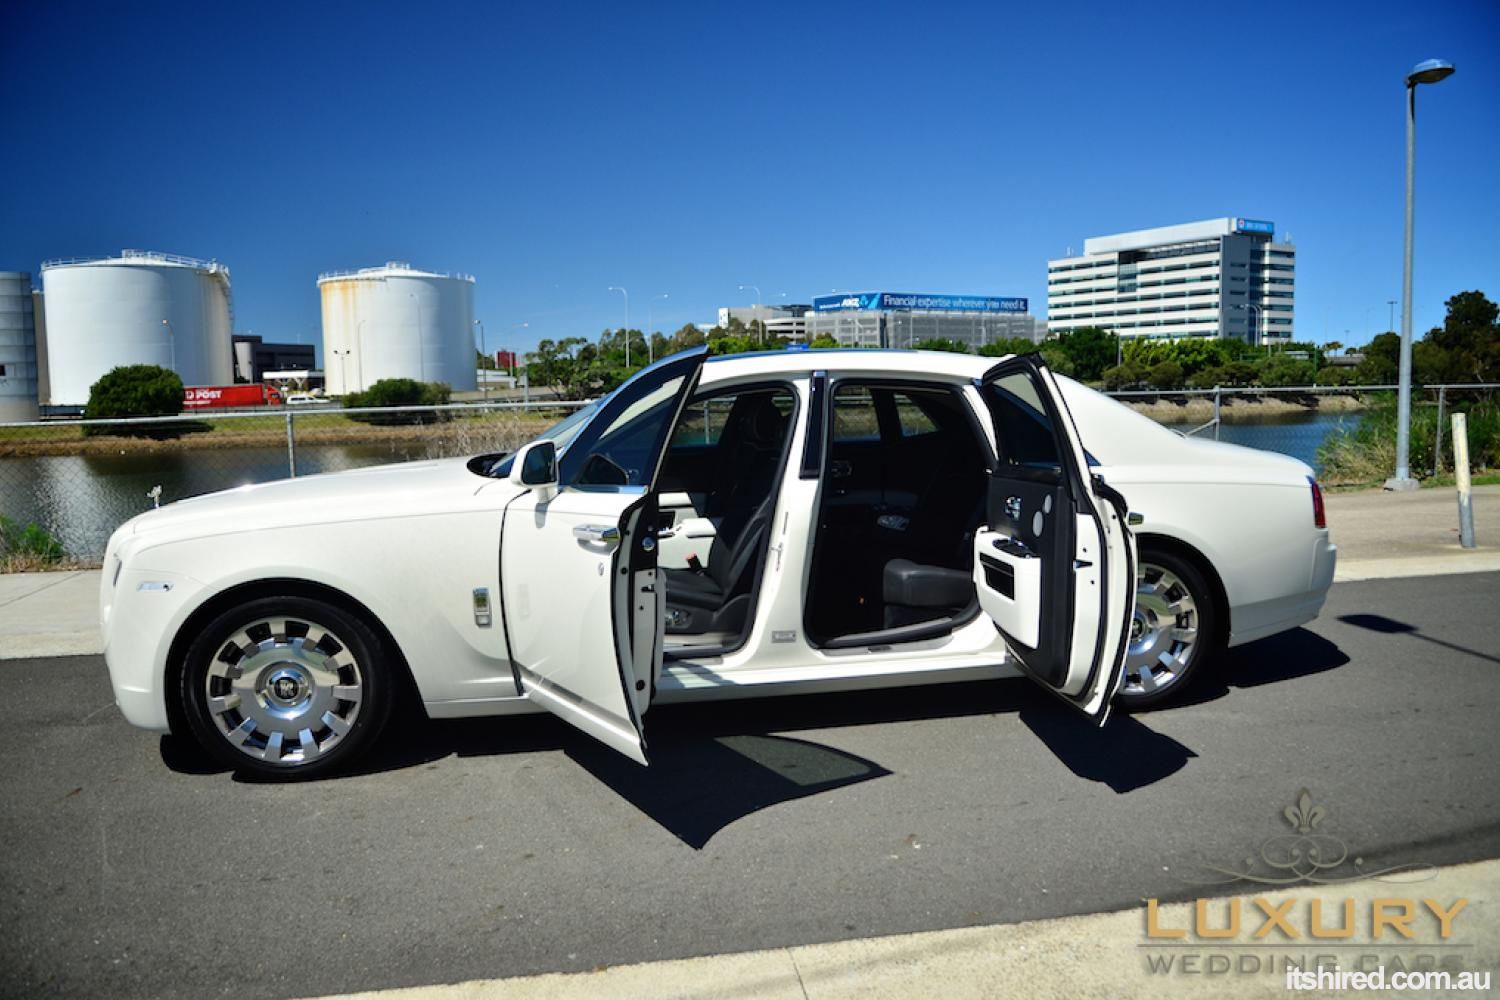 Rolls Royce Ghost Wedding Car Hire Sydney Luxury Wedding